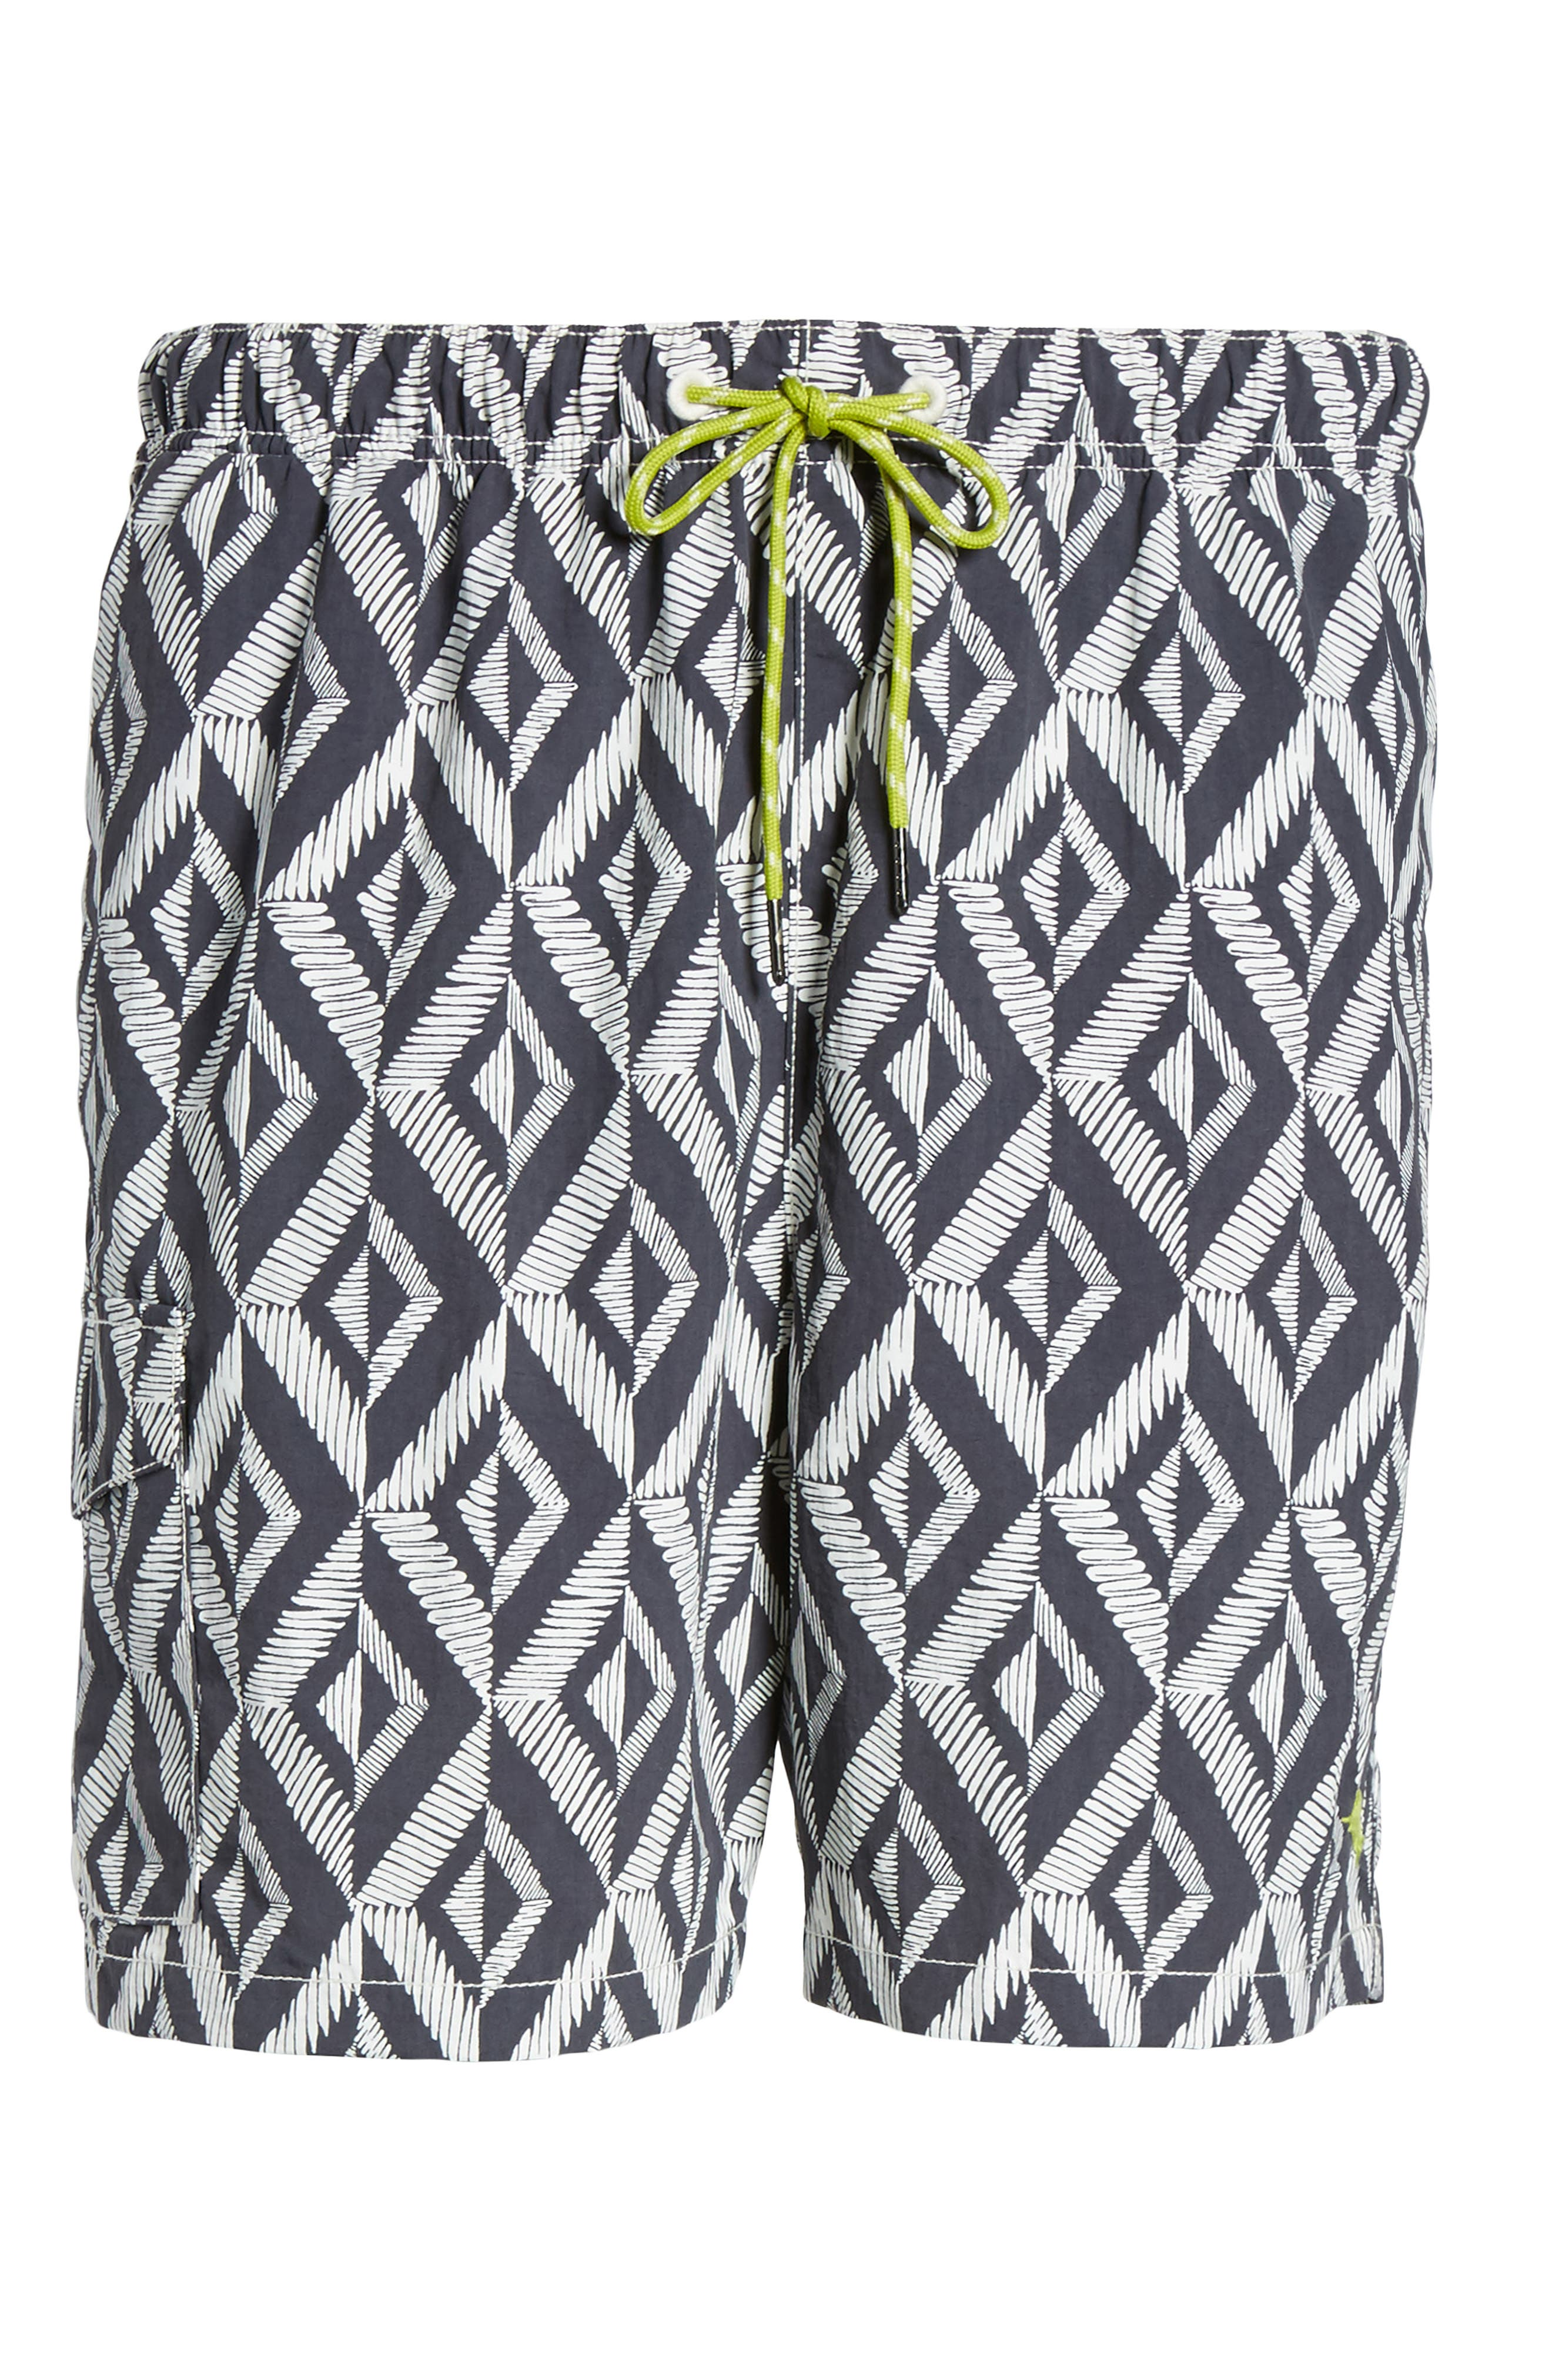 Naples Almas Swim Trunks,                             Alternate thumbnail 6, color,                             Night Swim